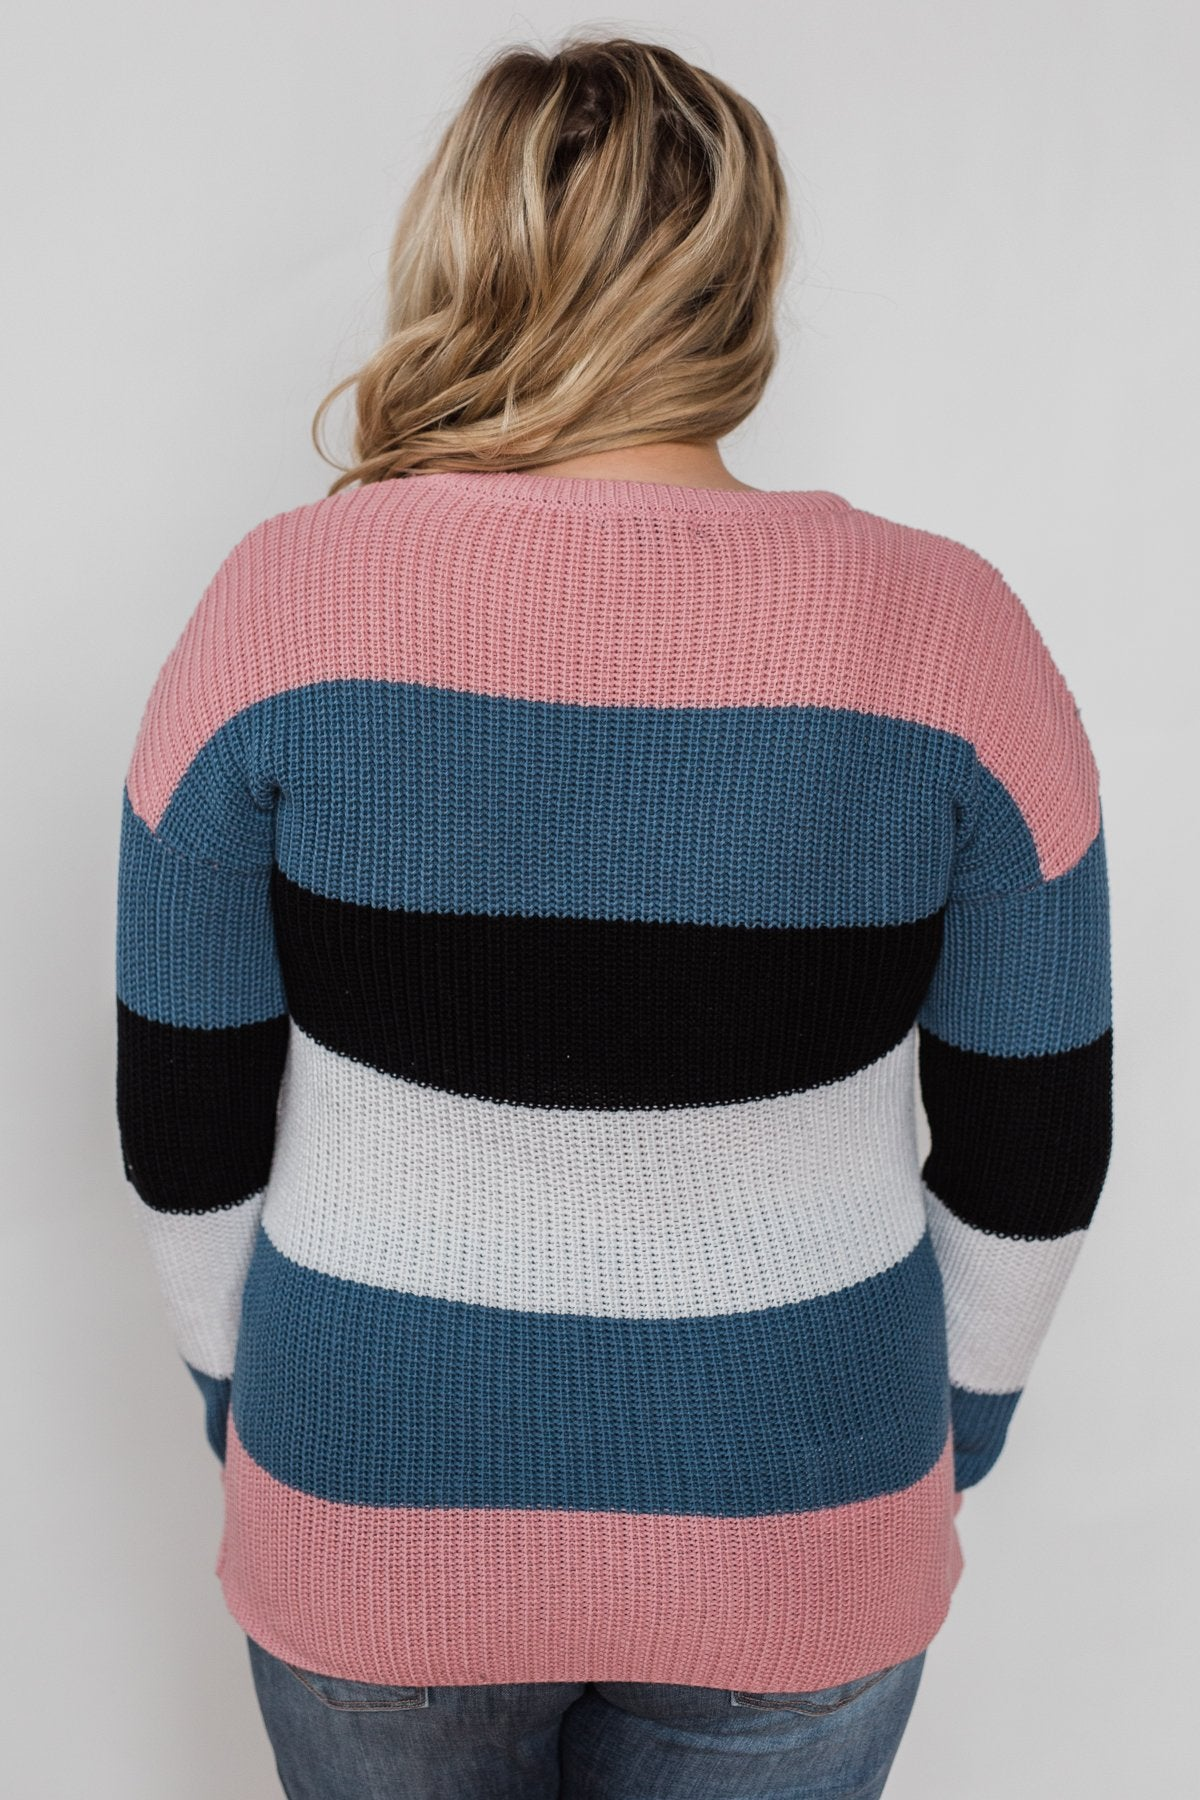 The Way to You Knitted Sweater - Rose, Teal, & Black